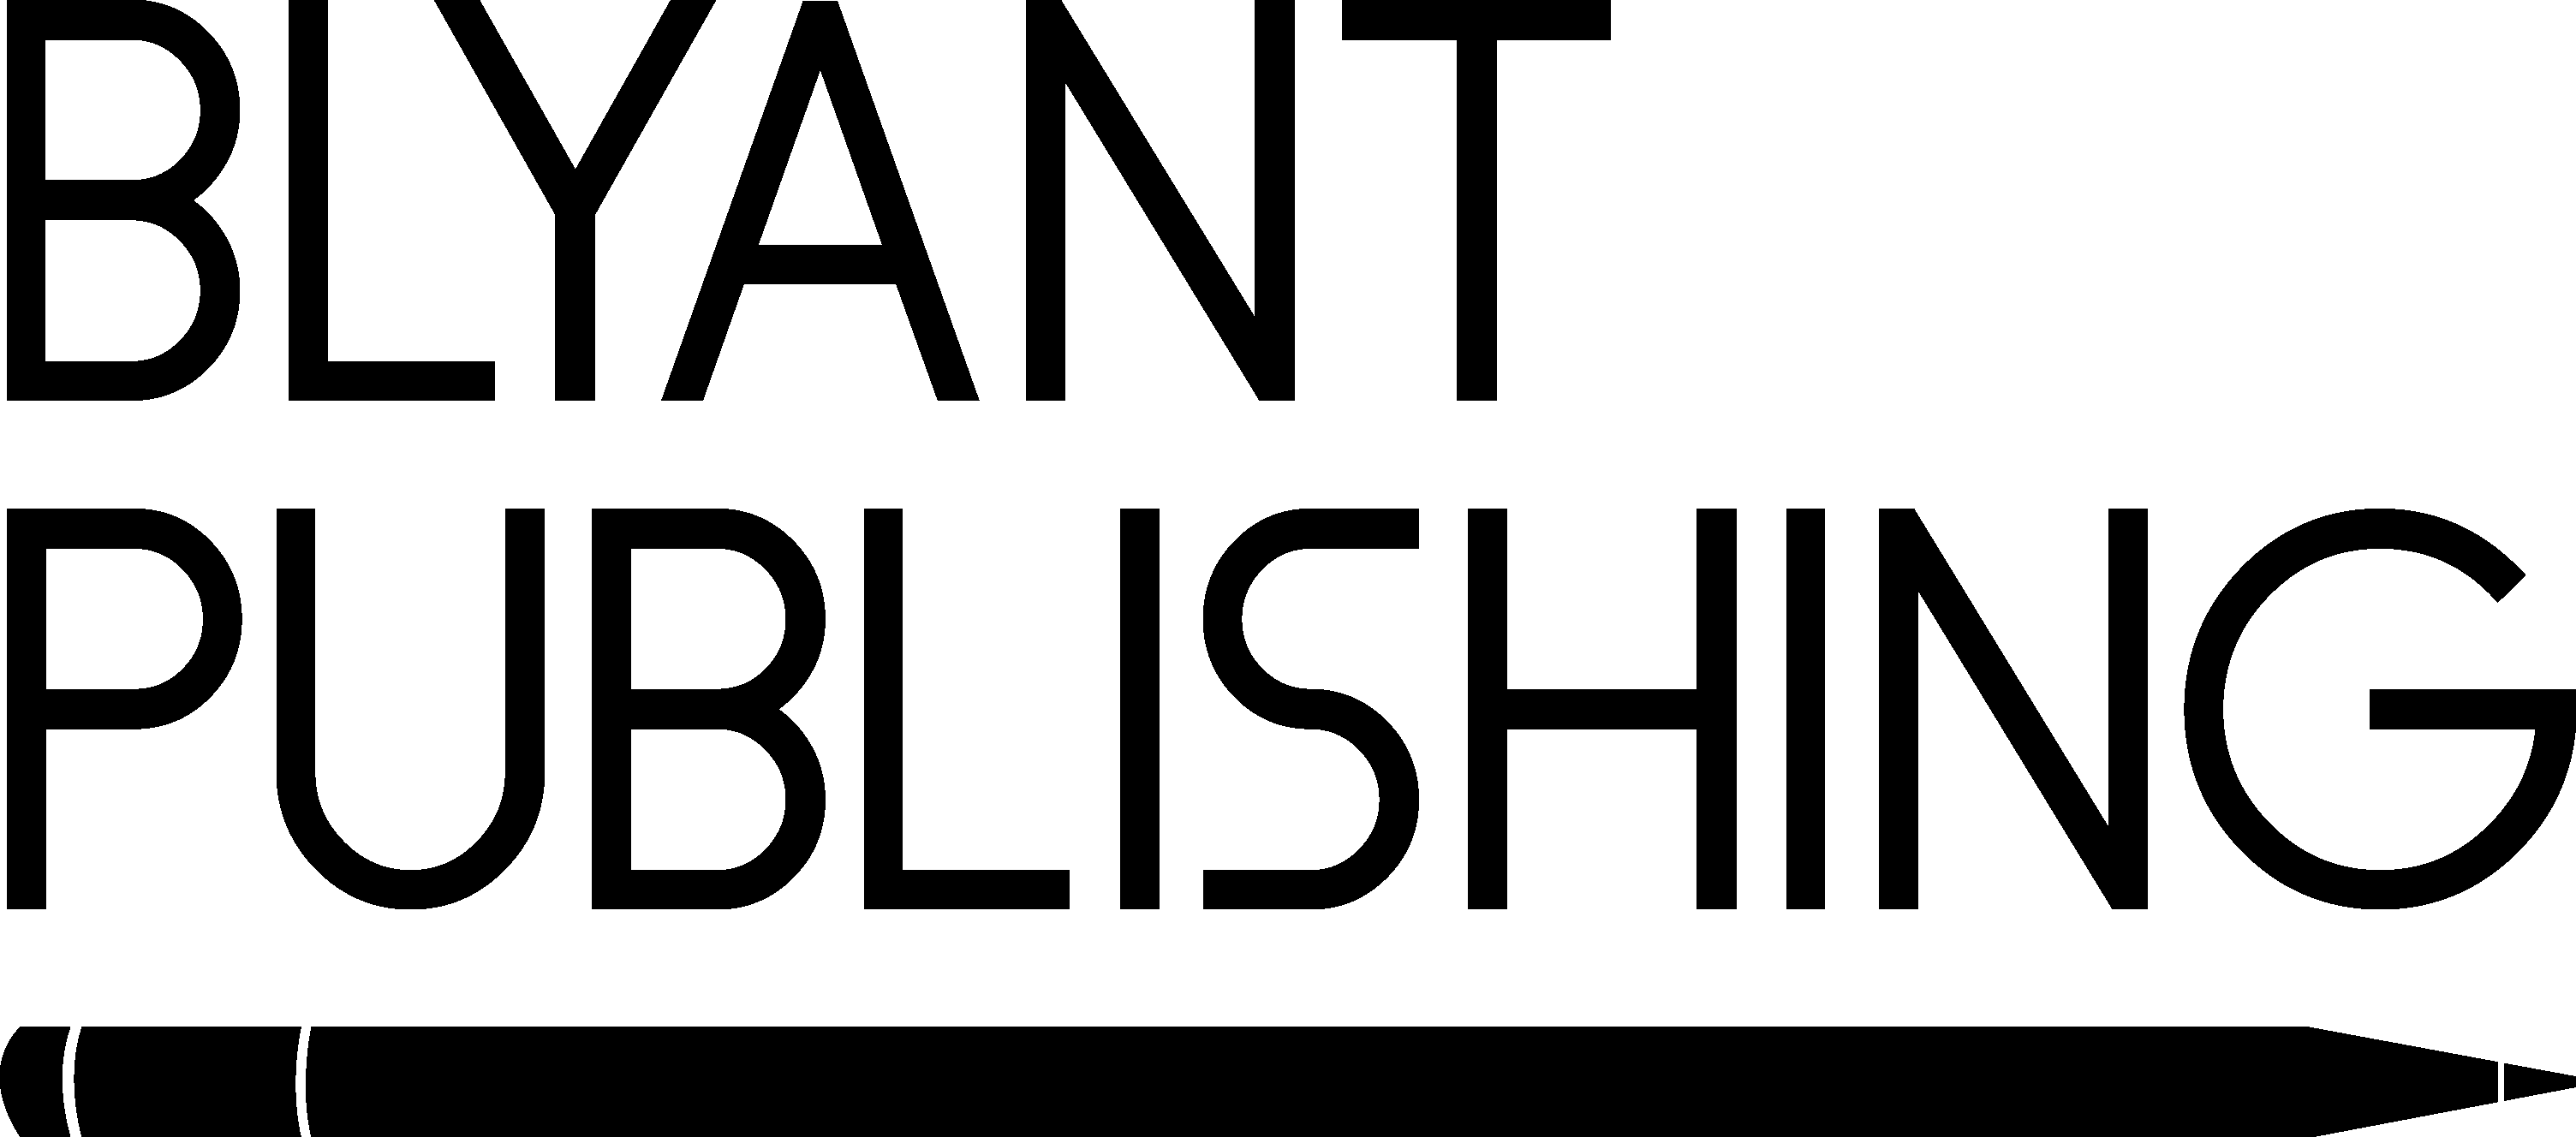 Blyant Publishing